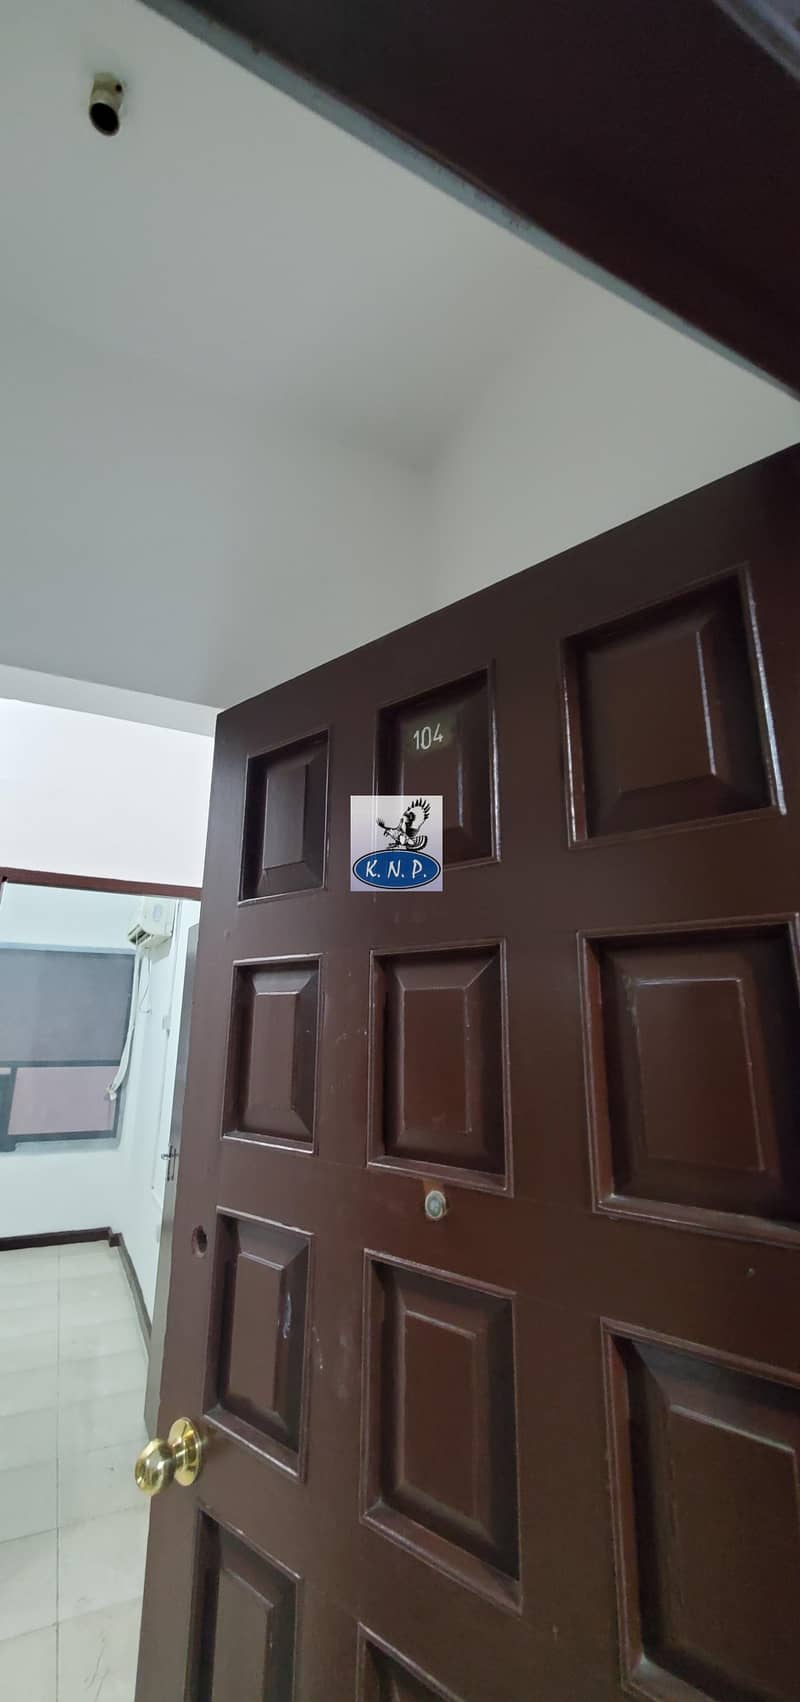 2 4 BEDROOM FLAT ONLY FOR  AED 55000/- | DIRECT FROM THE LANDLORD